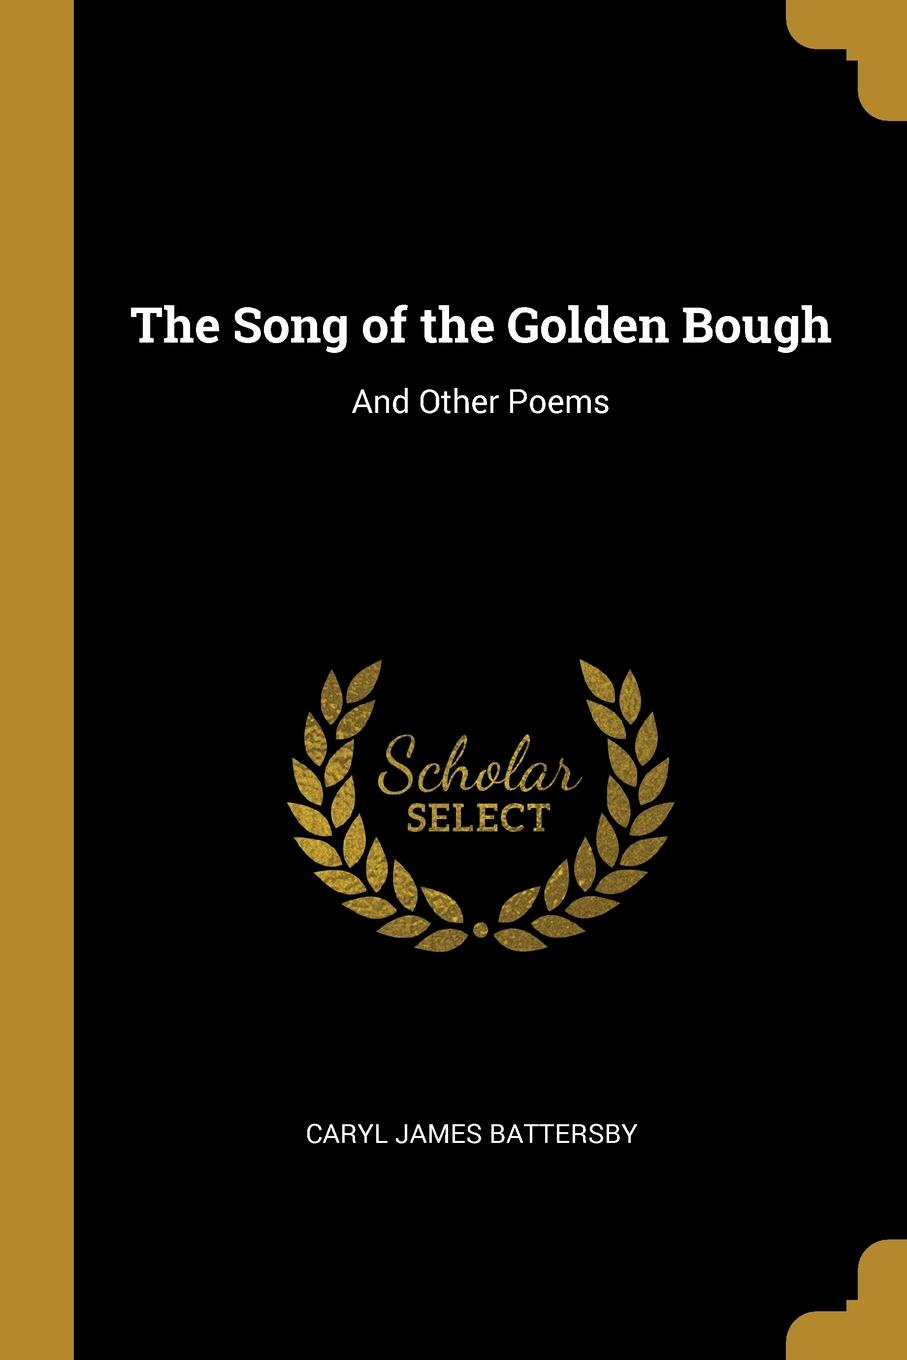 The Song of the Golden Bough. And Other Poems